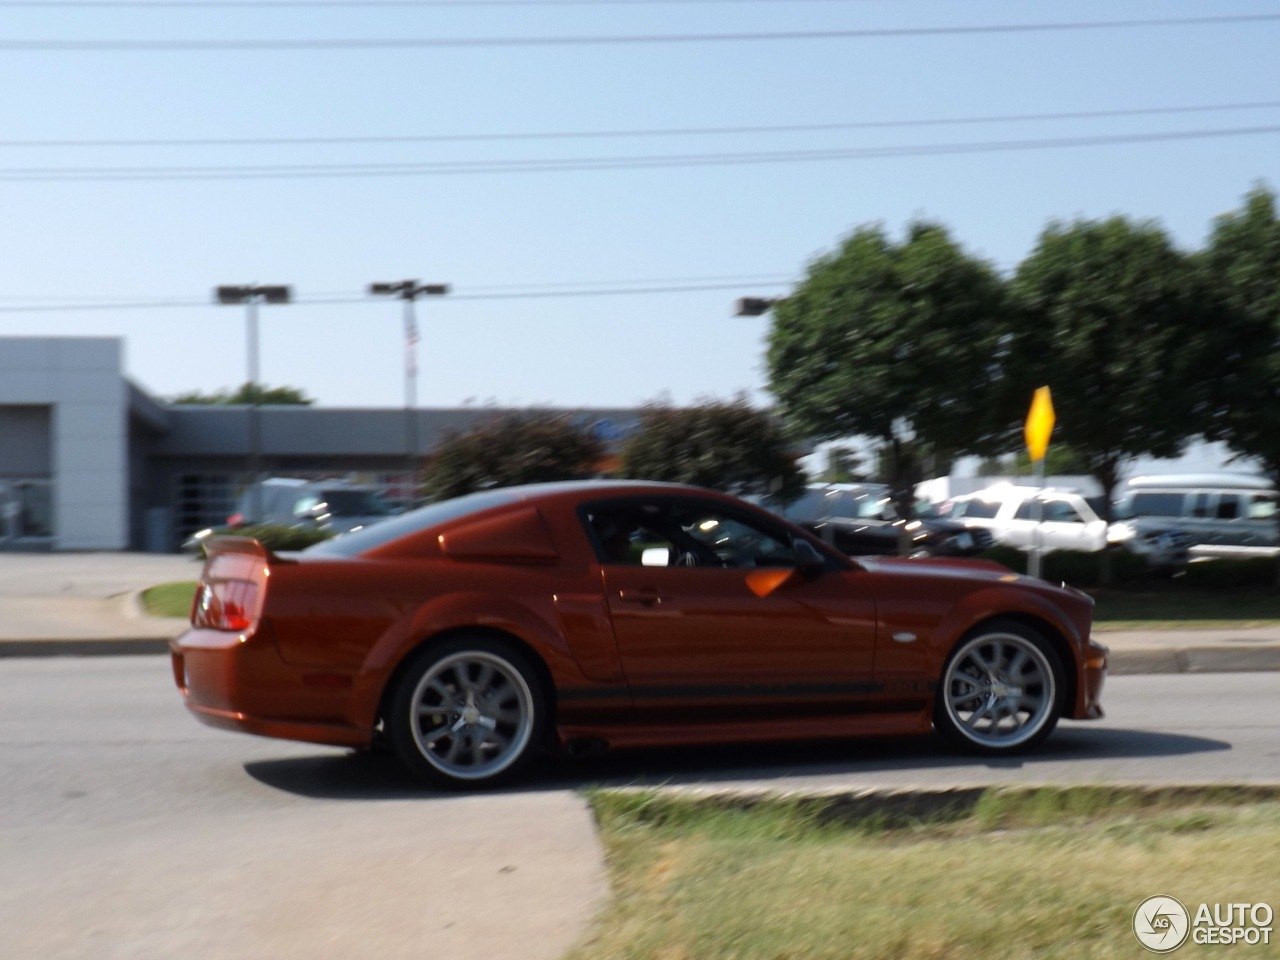 Ford Mustang Ronaele 350R 7